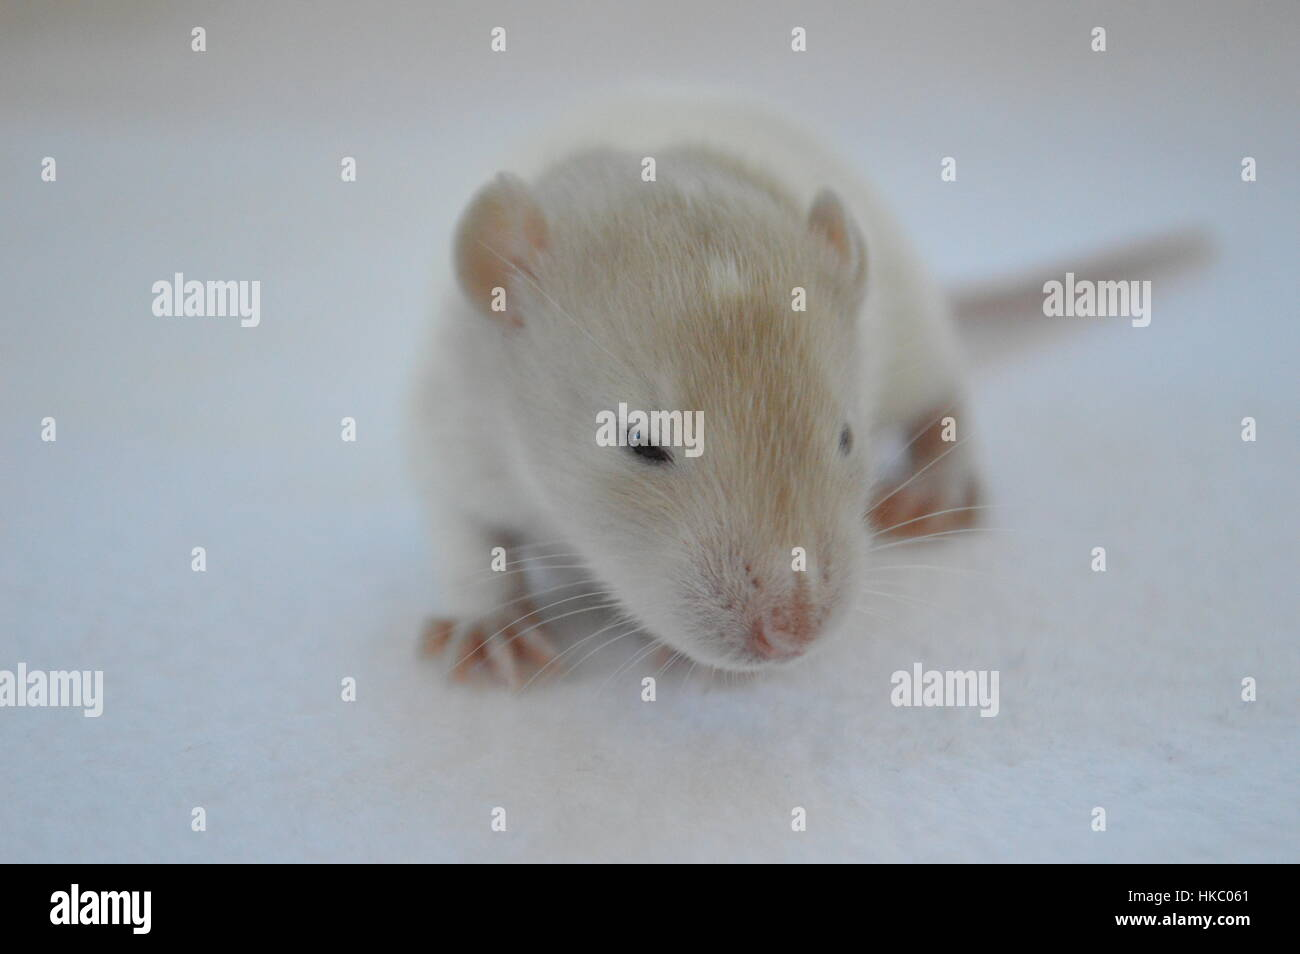 Baby rat on white background Stock Photo